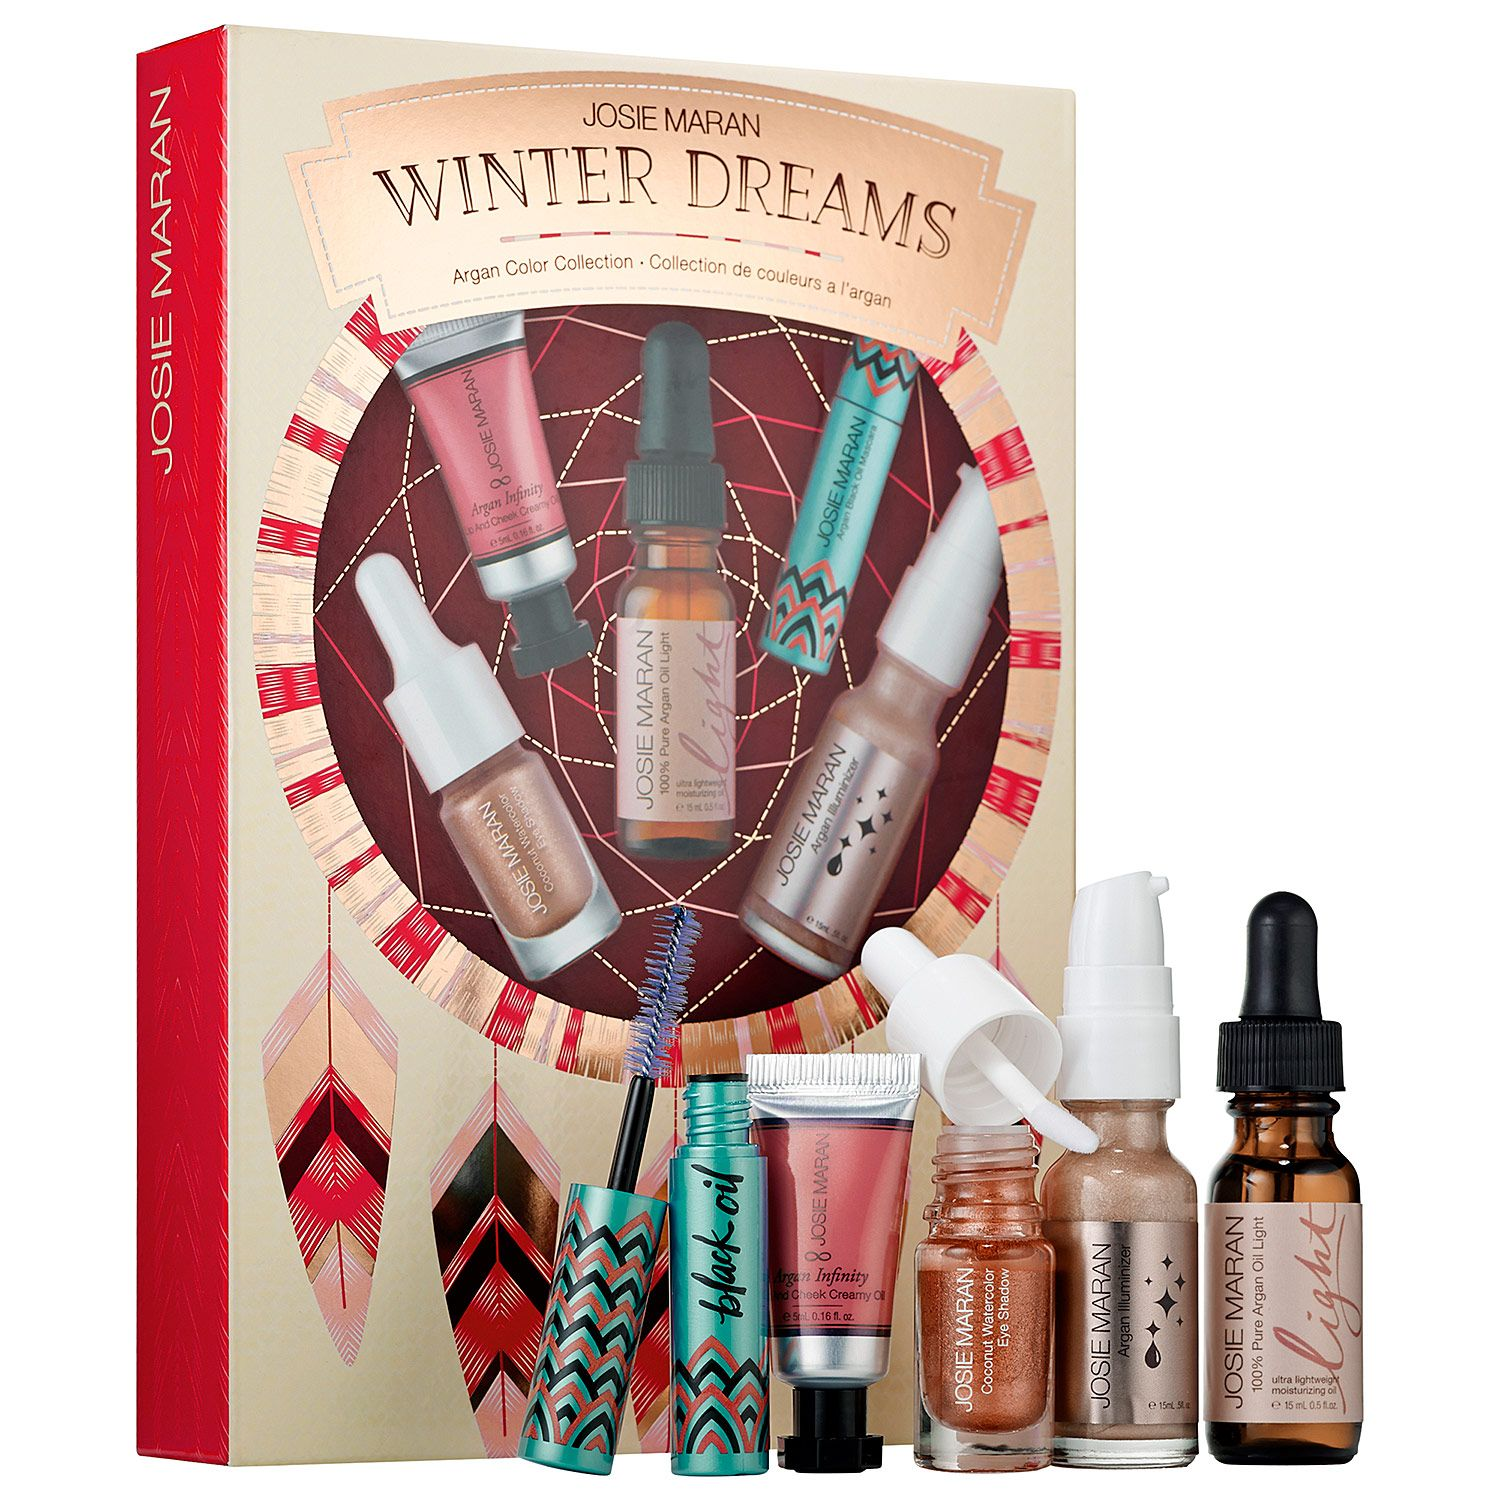 Winter Dreams Argan Color Collection Josie Maran Sephora